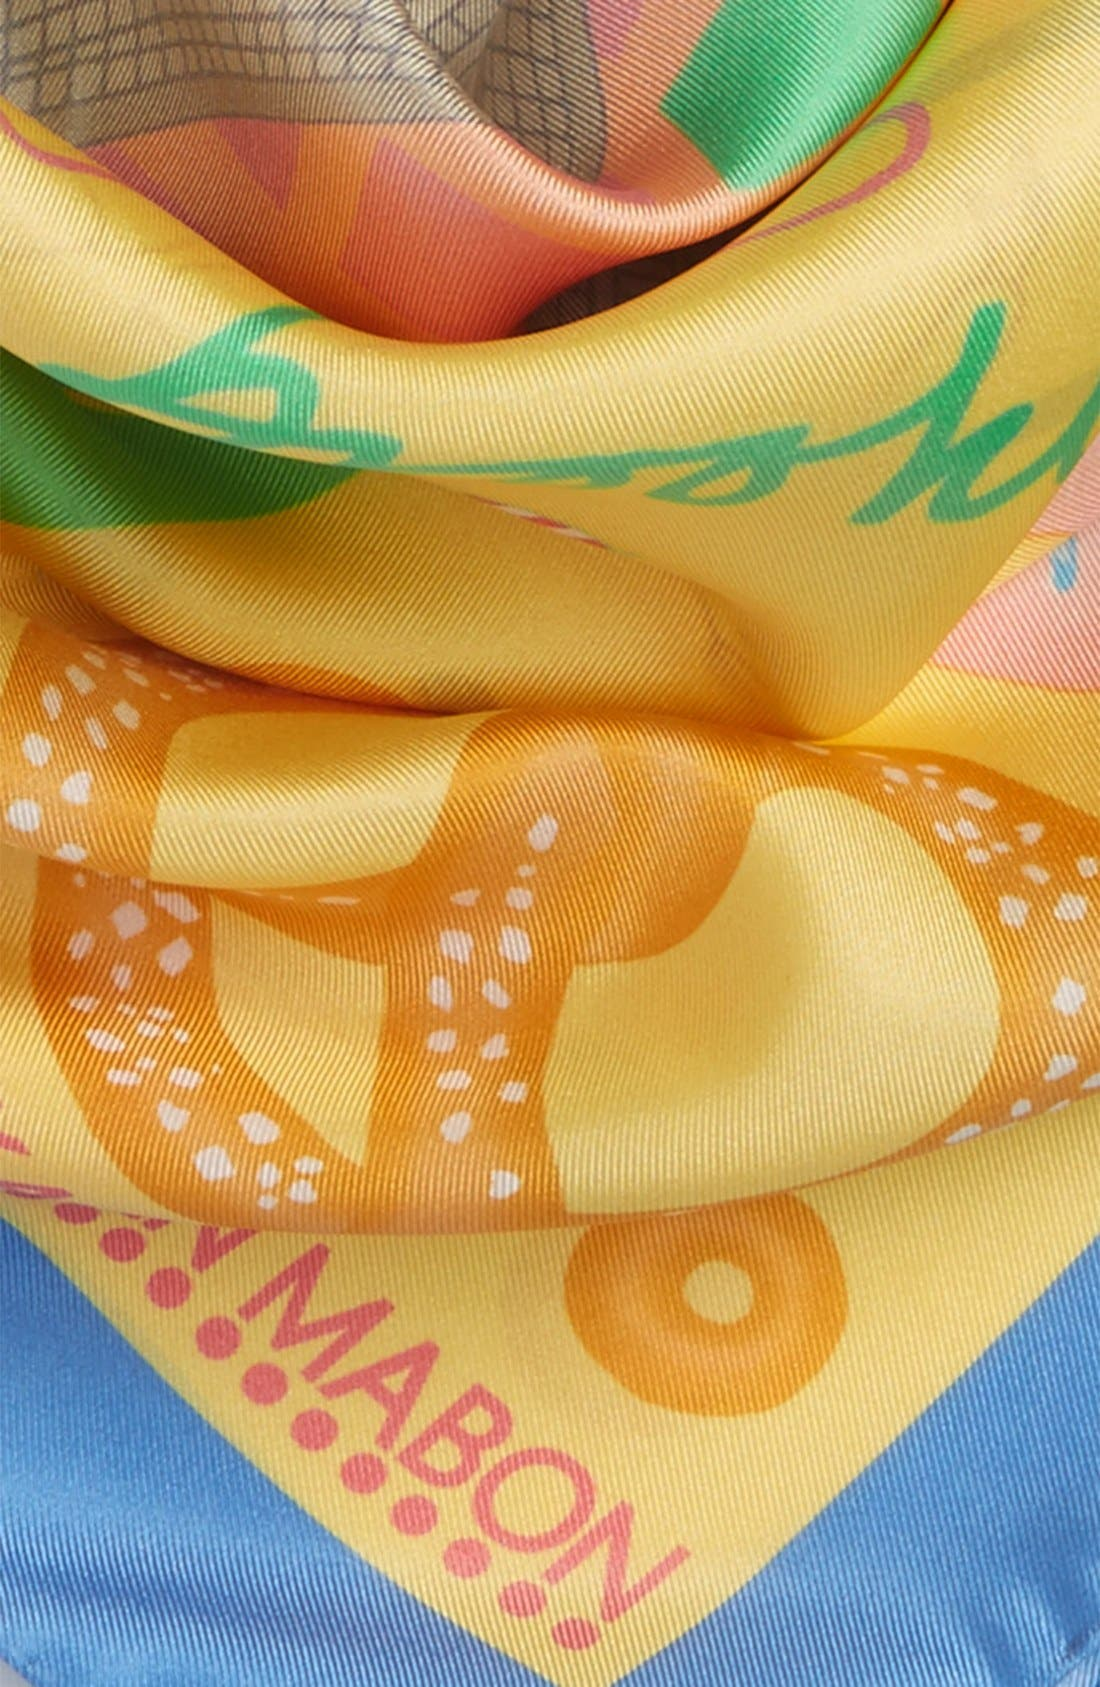 Alternate Image 3  - Karen Mabon 'New York, New York' Silk Square Scarf